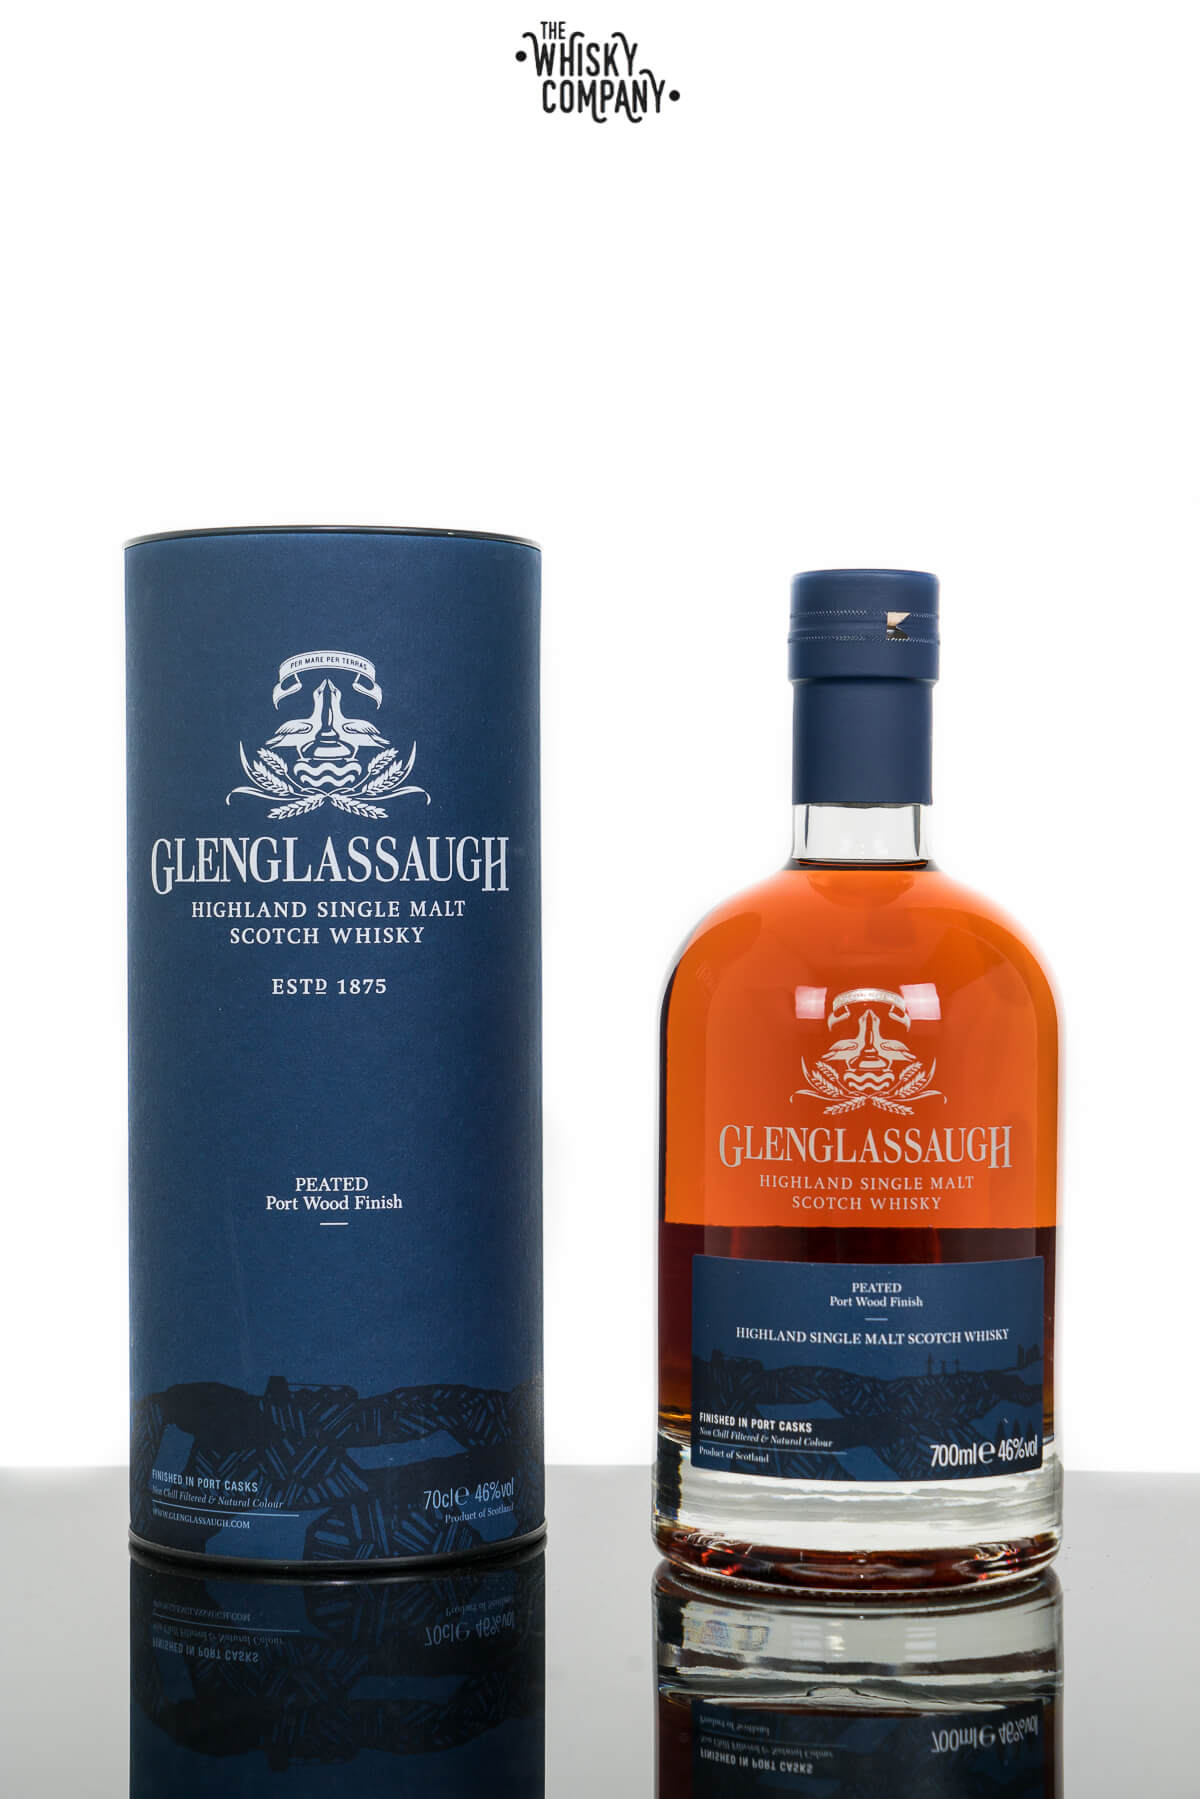 Glenglassaugh Peated Portwood Finish Highland Single Malt Scotch Whisky (700ml)